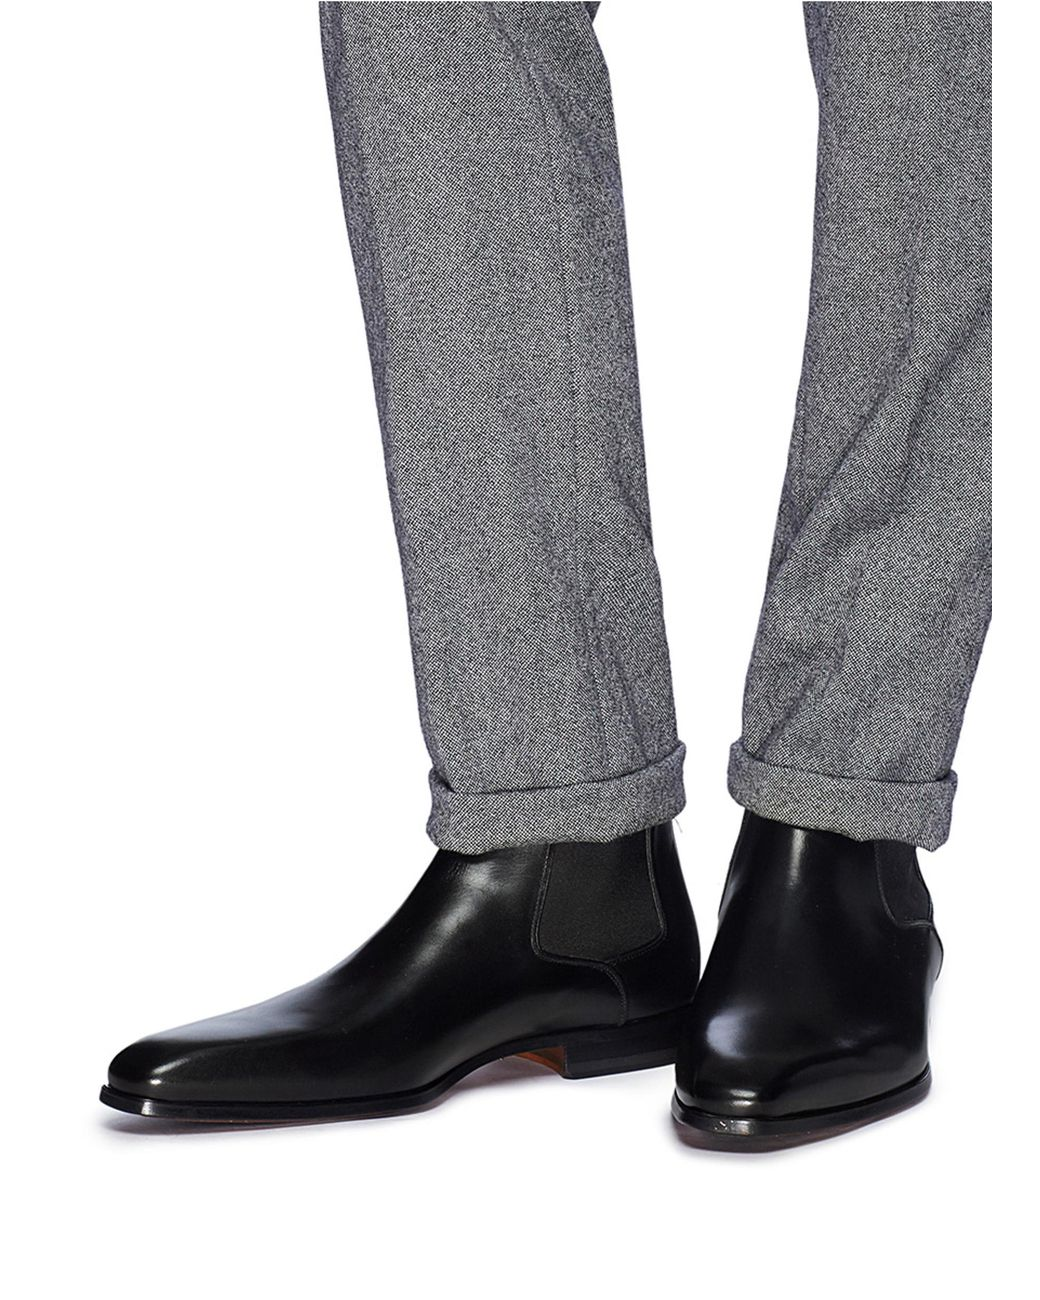 Magnanni Leather Chelsea Boots in Black